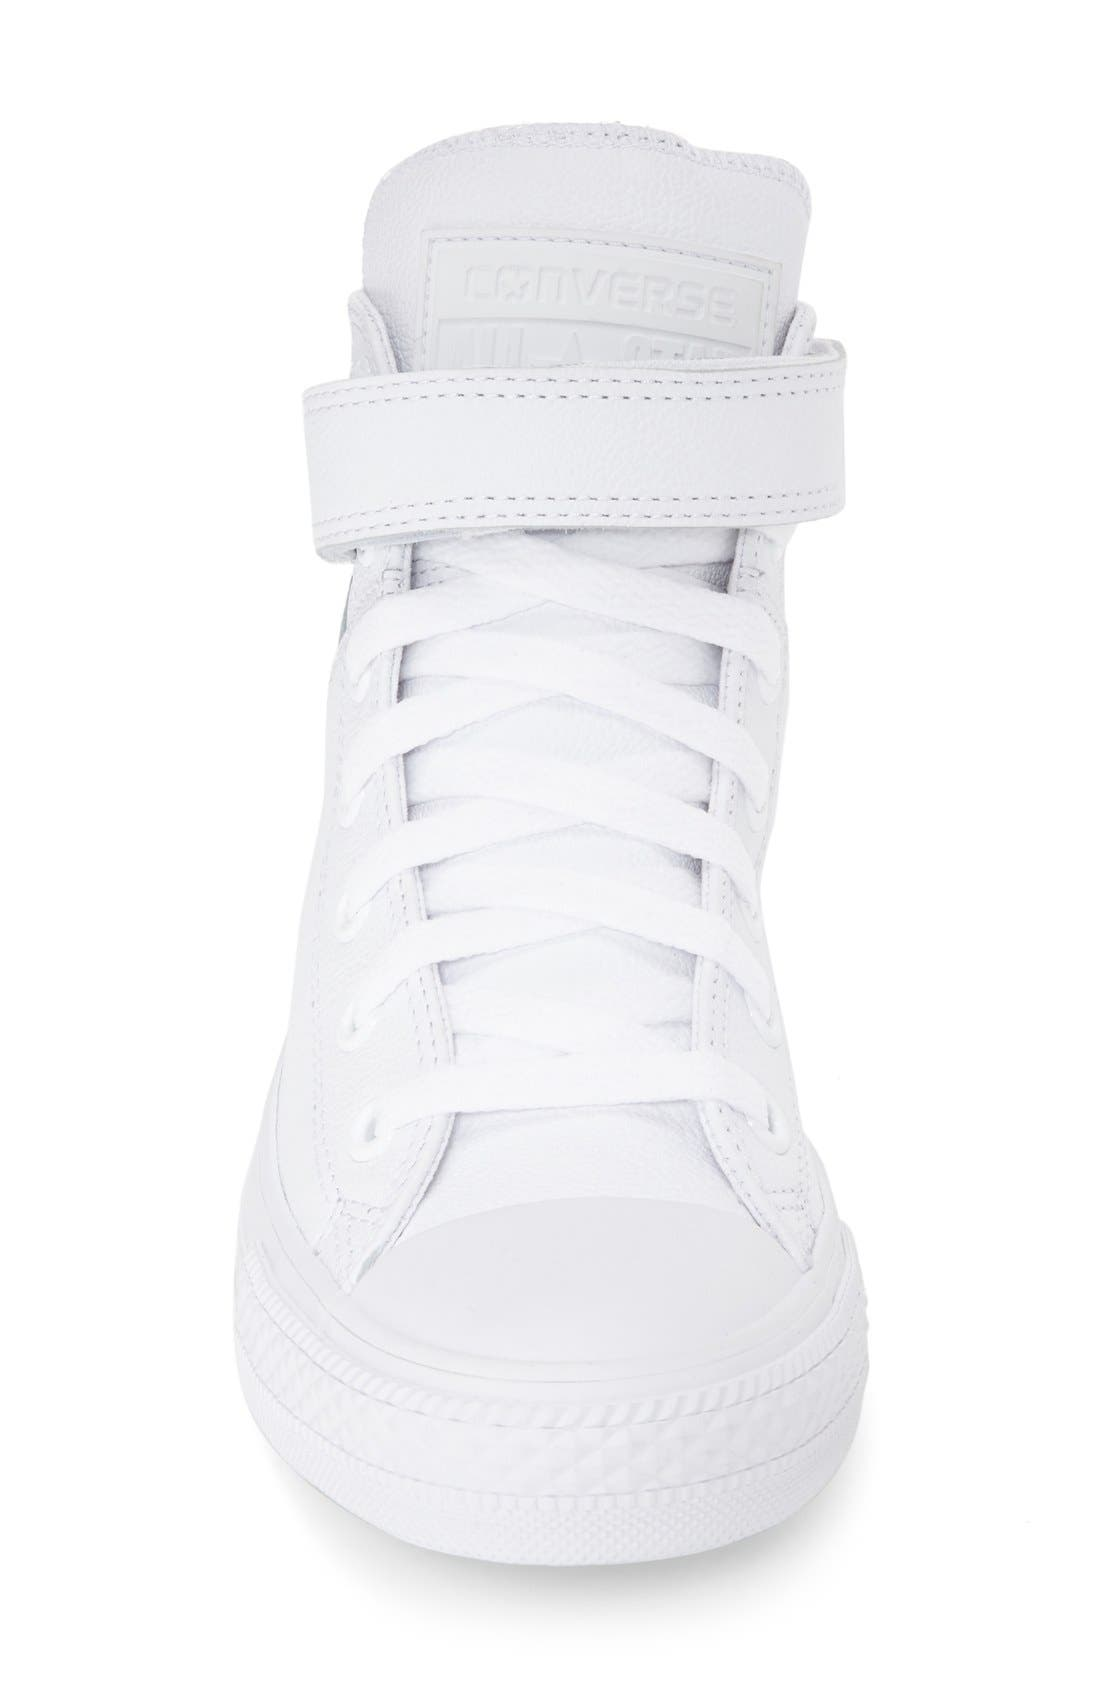 Alternate Image 3  - Converse Chuck Taylor® All Star® 'Brea' Leather High Top Sneaker (Women)